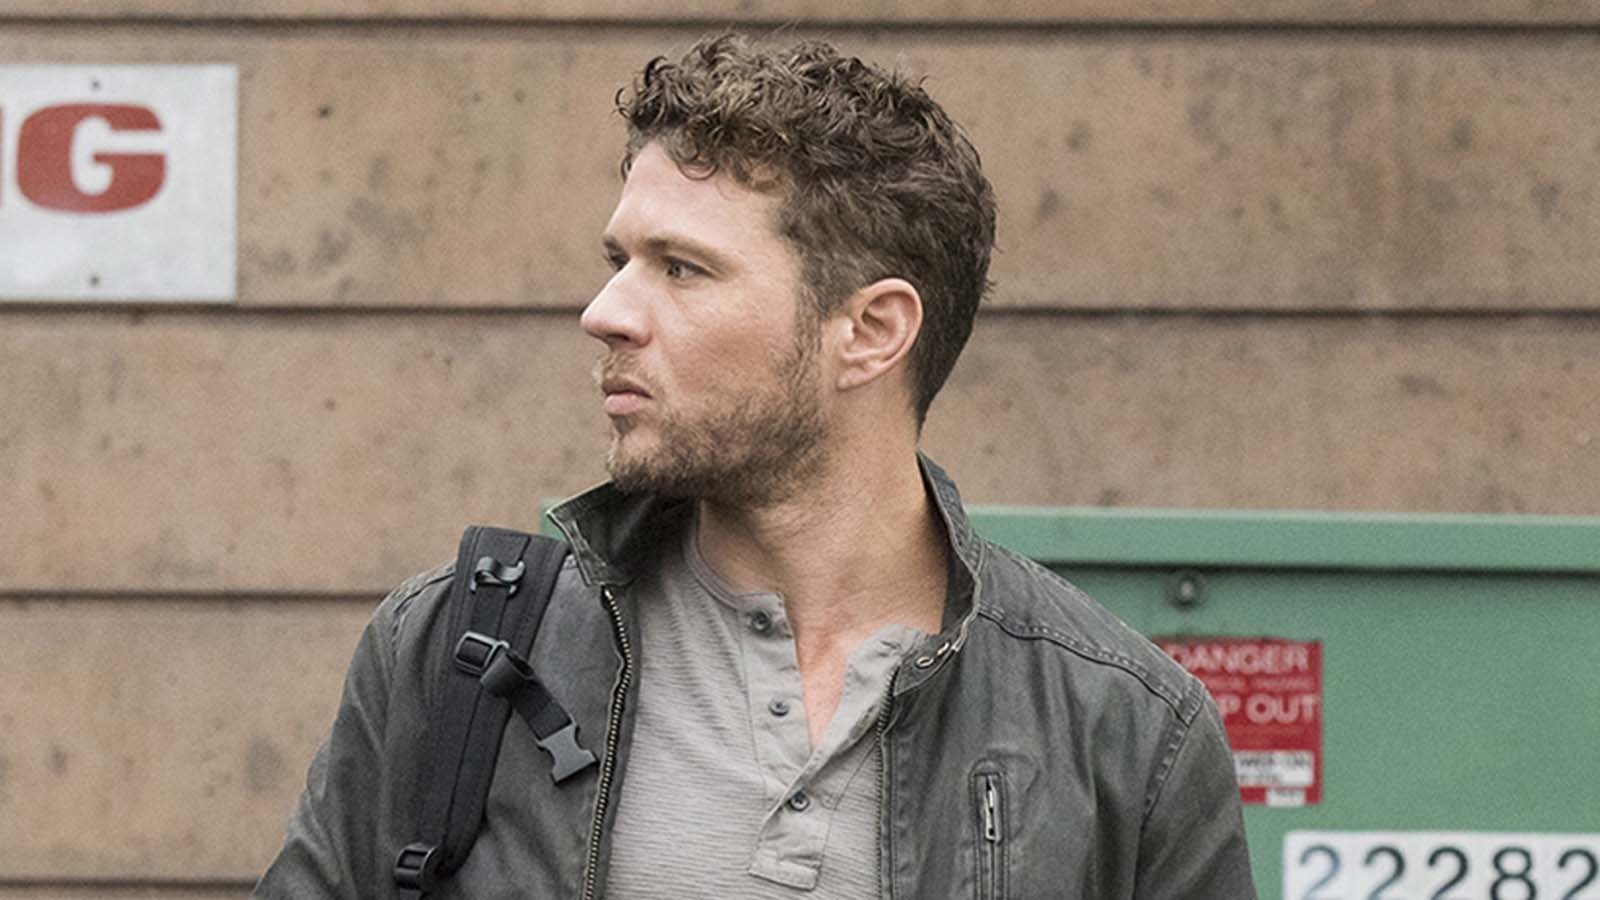 Ryan Phillippe as Bob Lee Swagger in